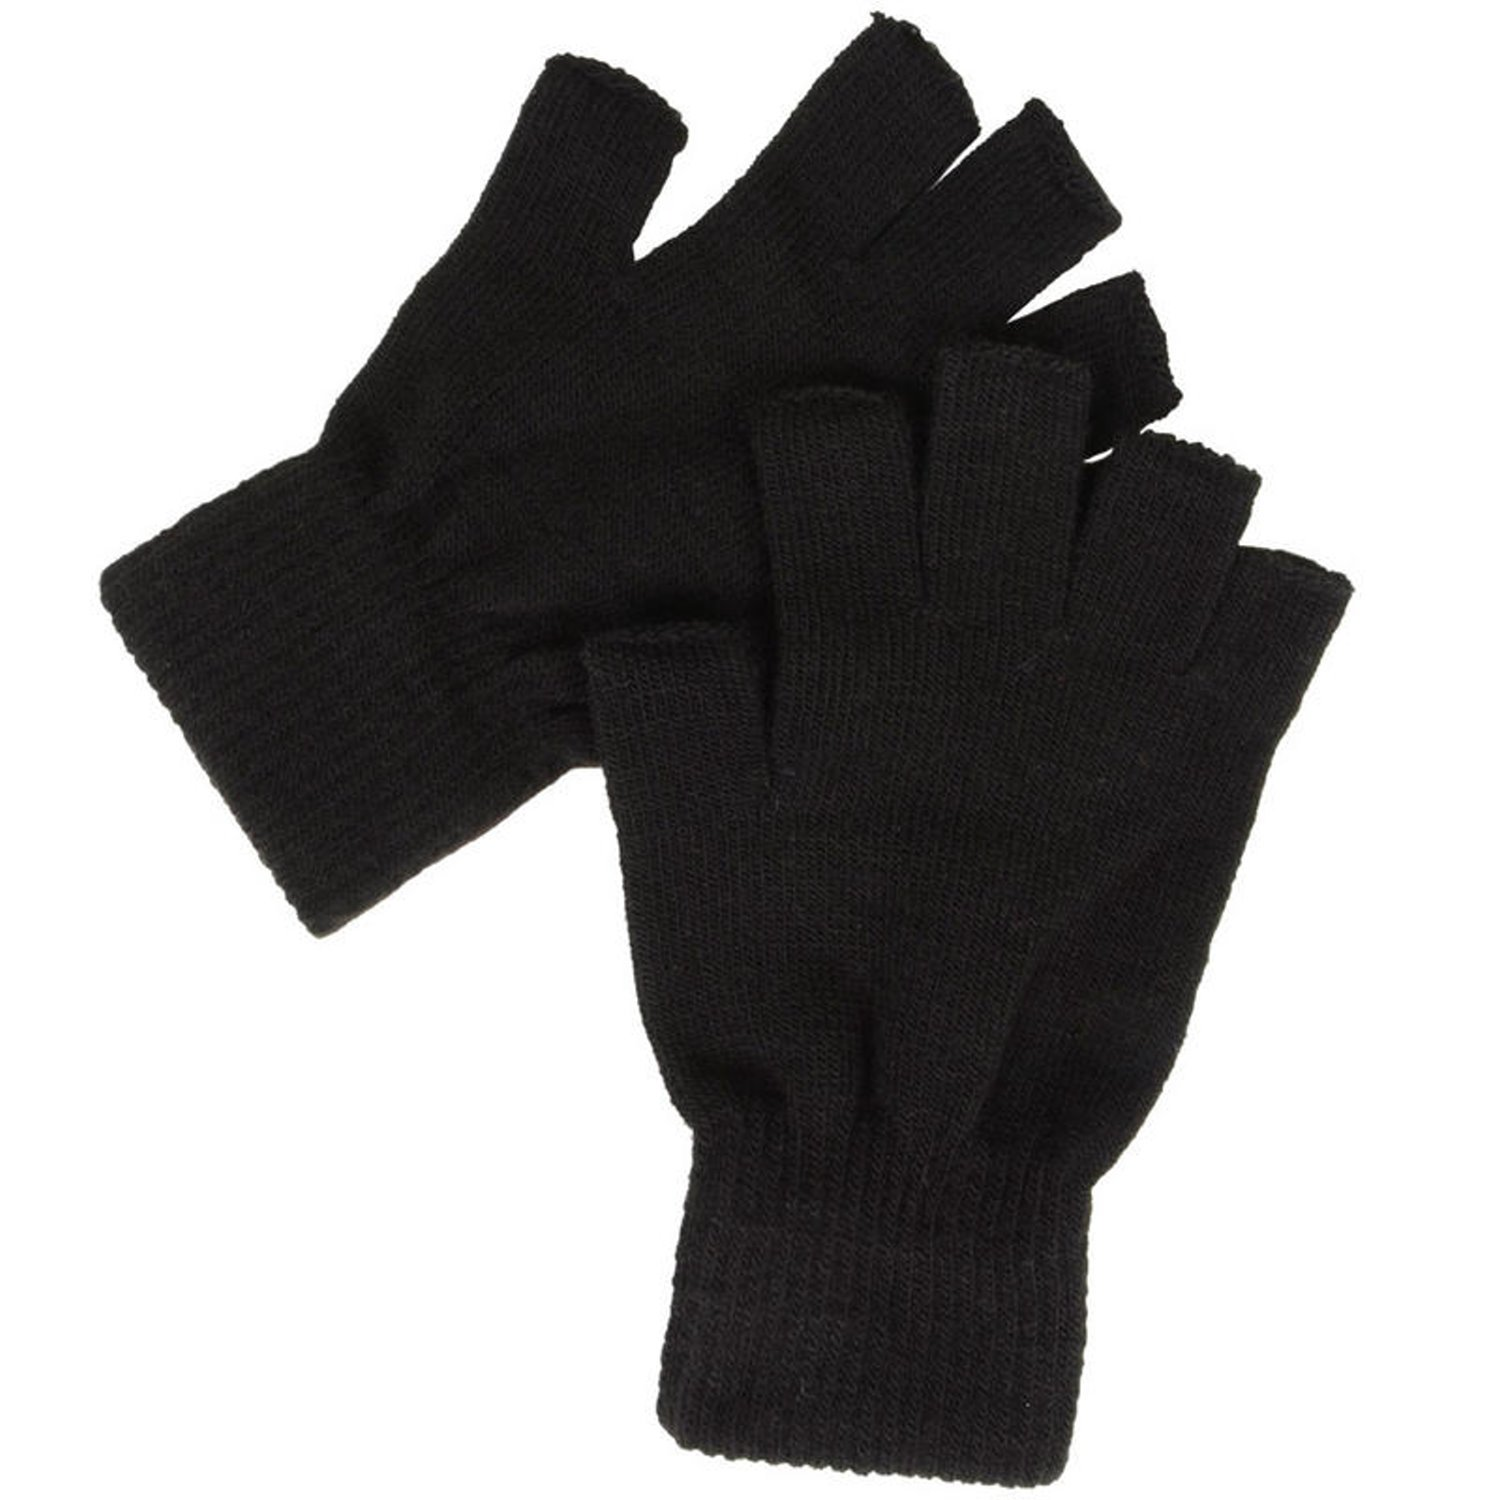 Mens gloves no fingers - Mens Thinsulate 3m Thermal Fingerless Gloves Black M L Amazon Co Uk Clothing